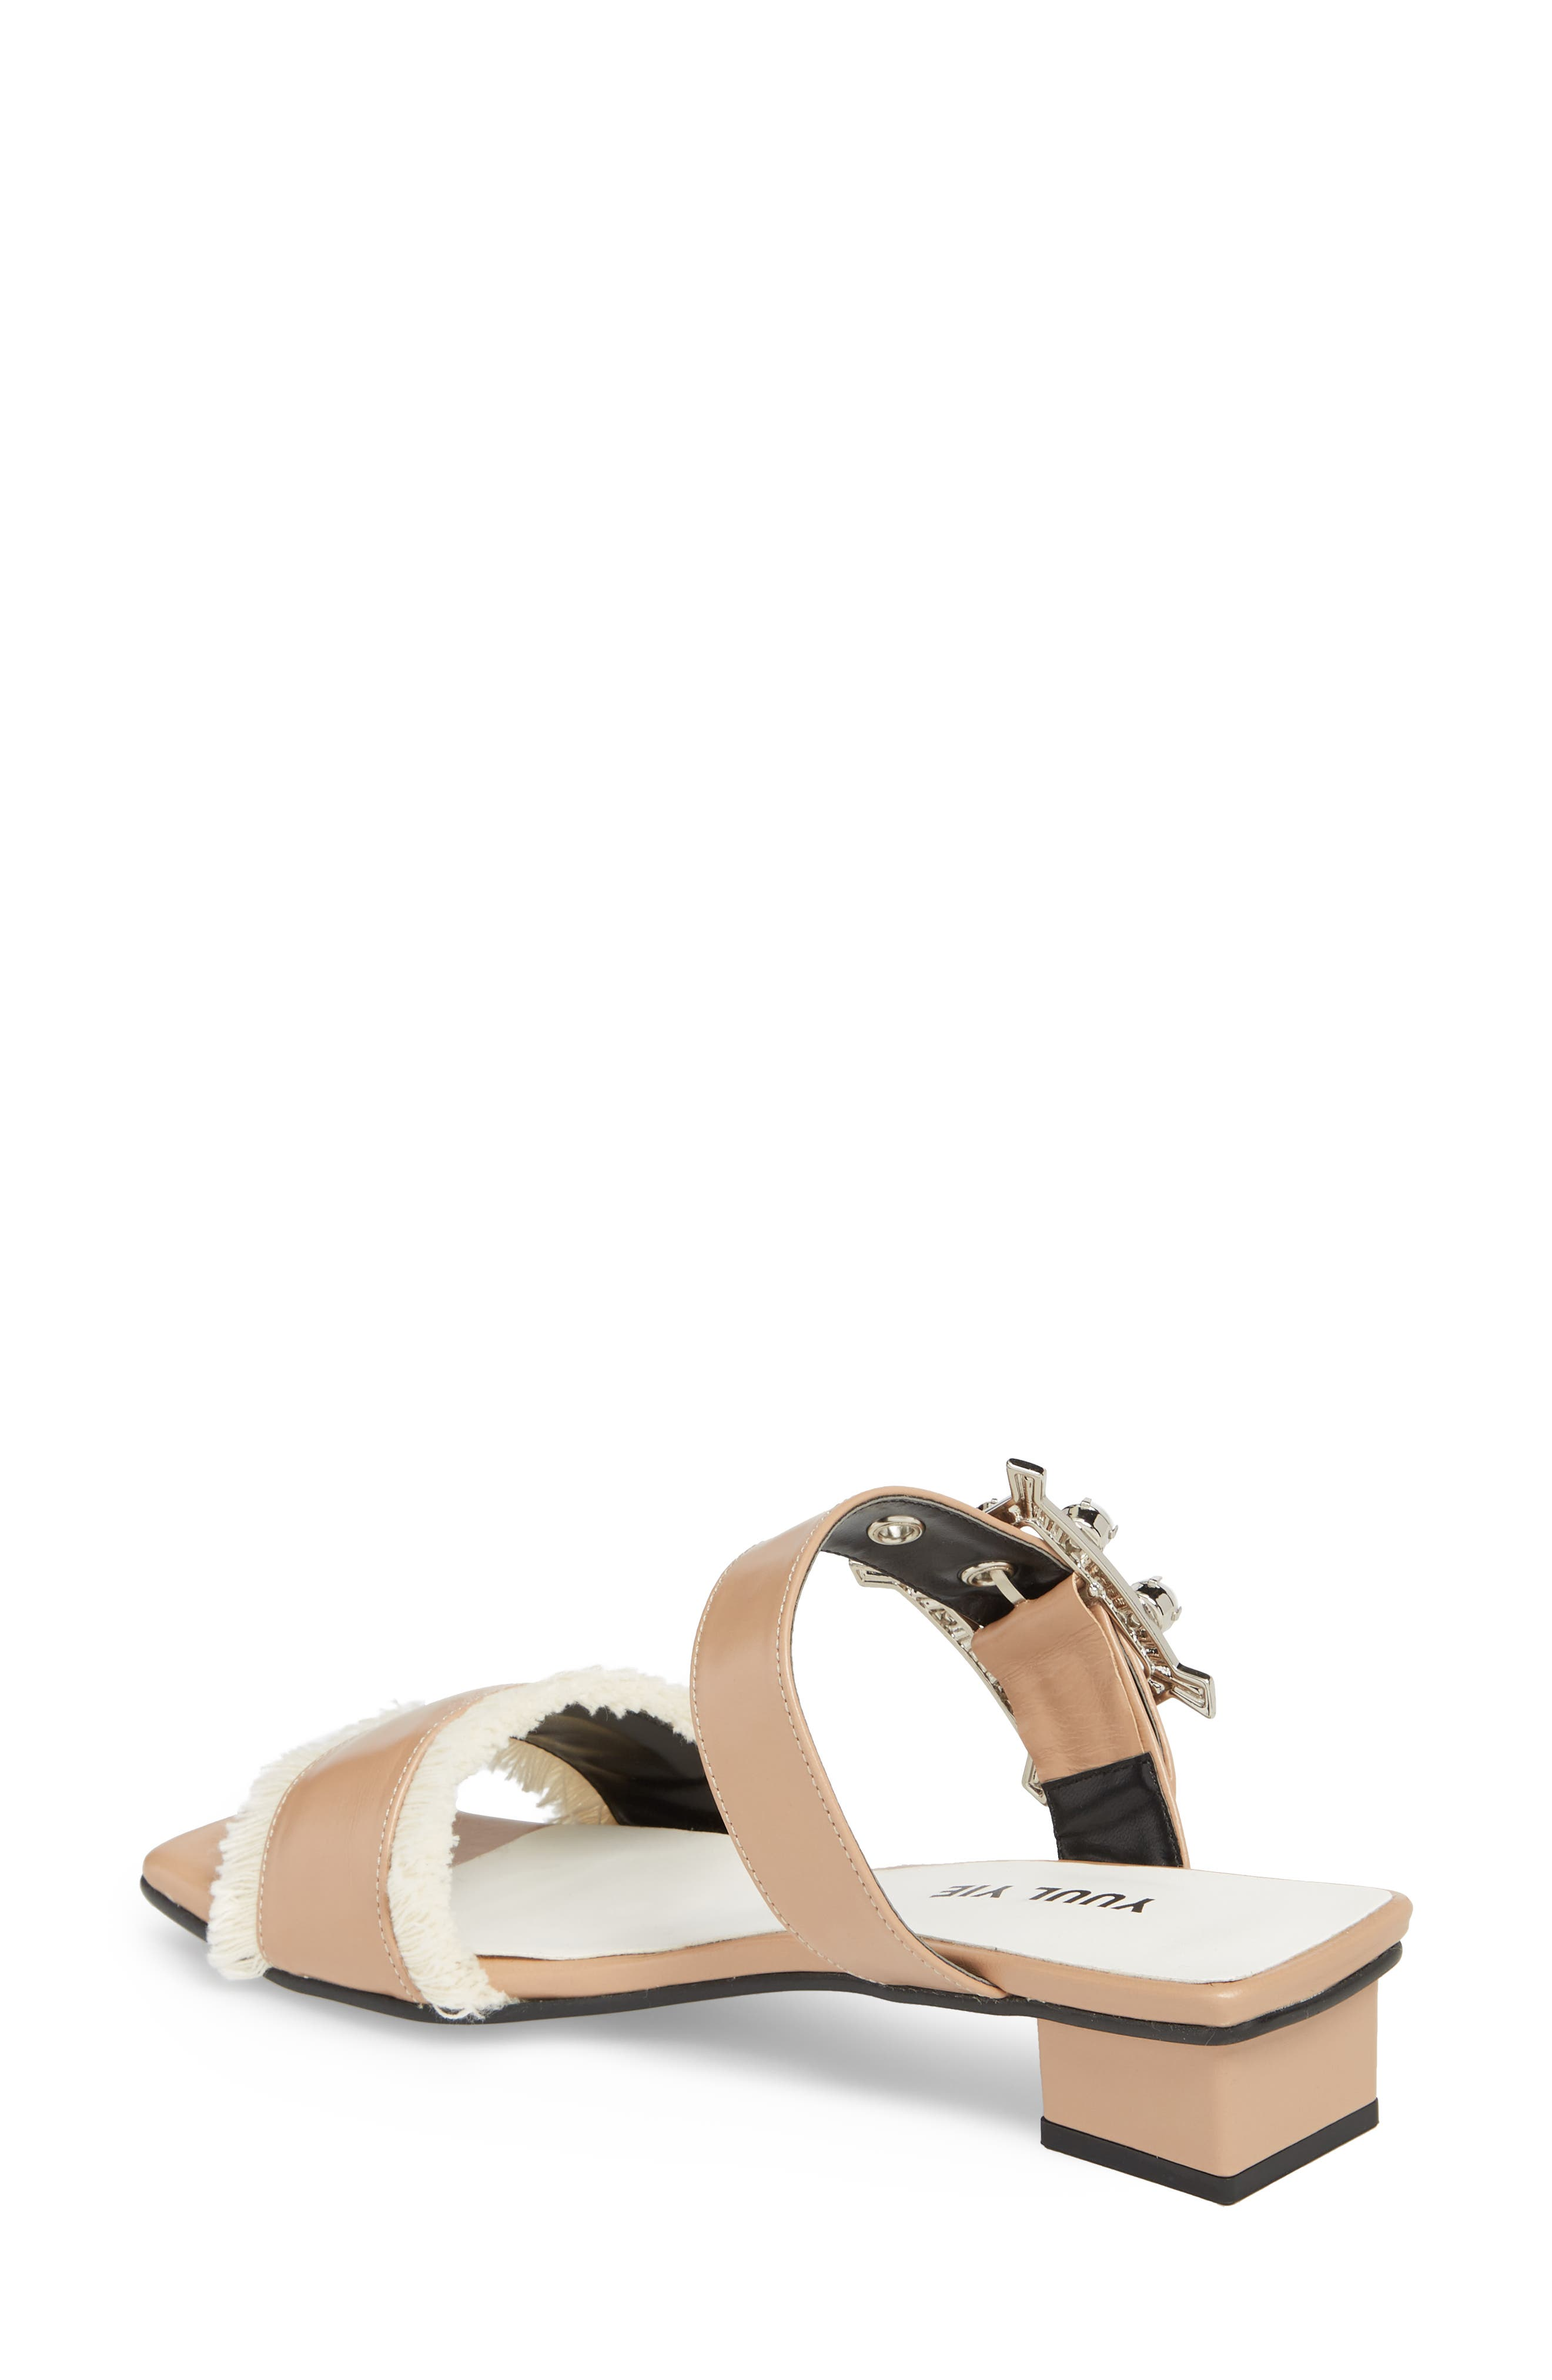 Embellished Slide Sandal,                             Alternate thumbnail 2, color,                             Skin Beige